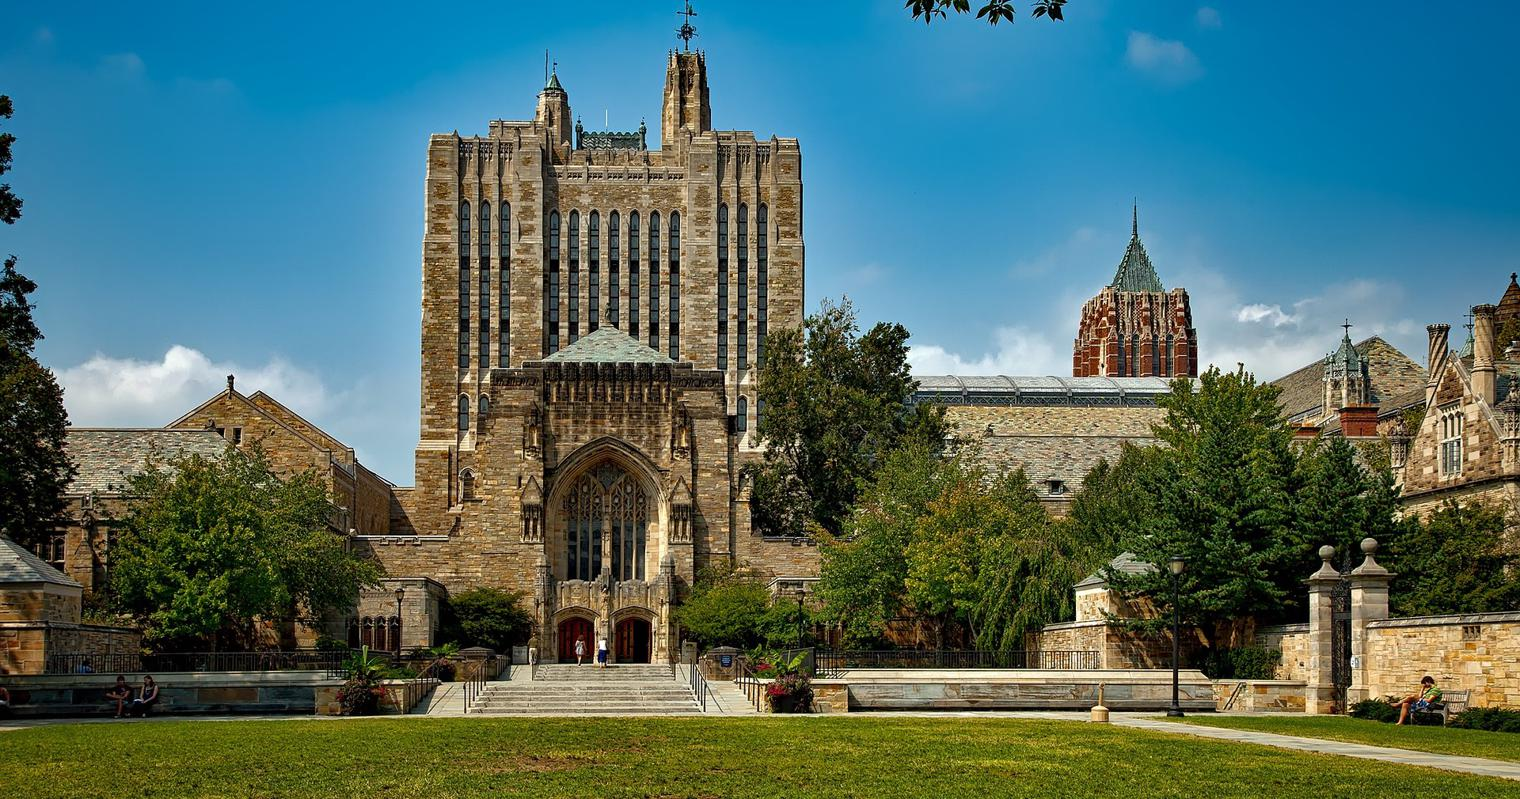 The Top 20 Universities with the Highest Average GPAs